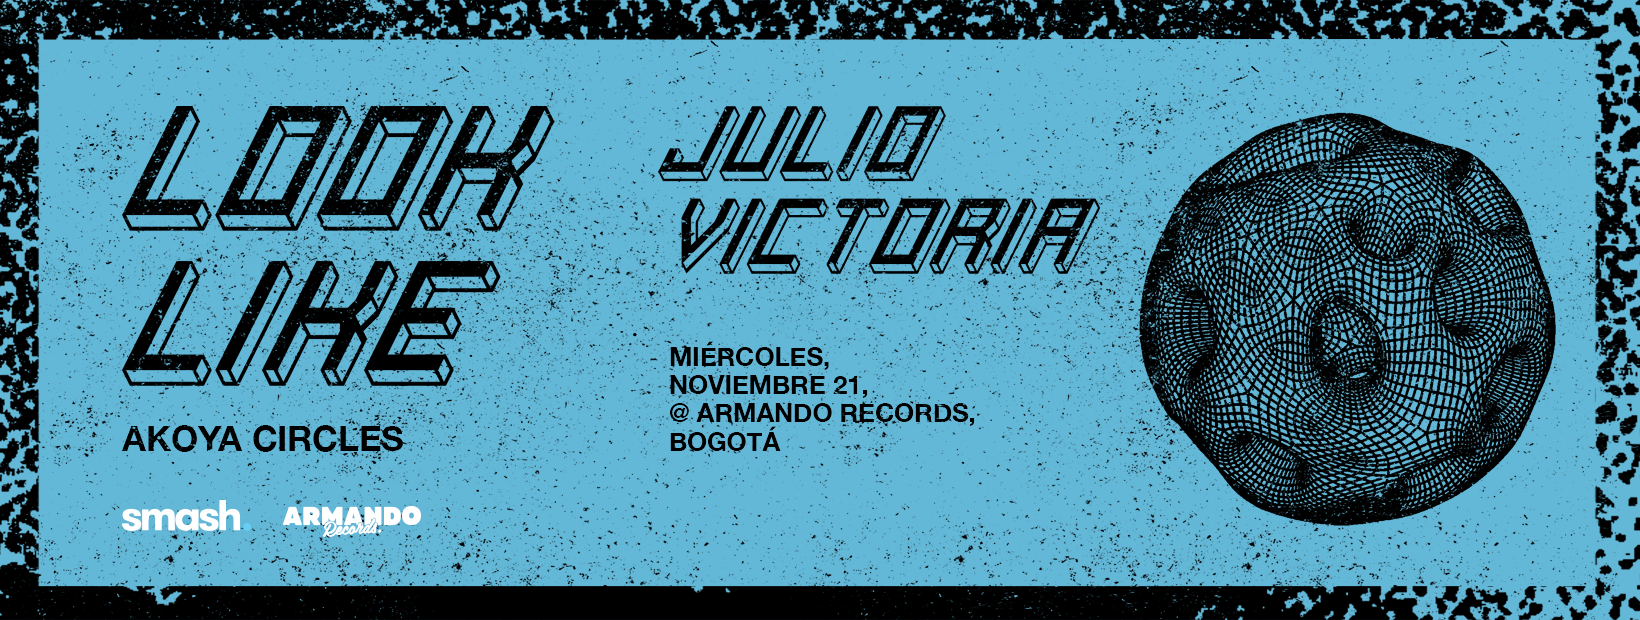 18-07-juliovictoria-looklike-bannerfb.png